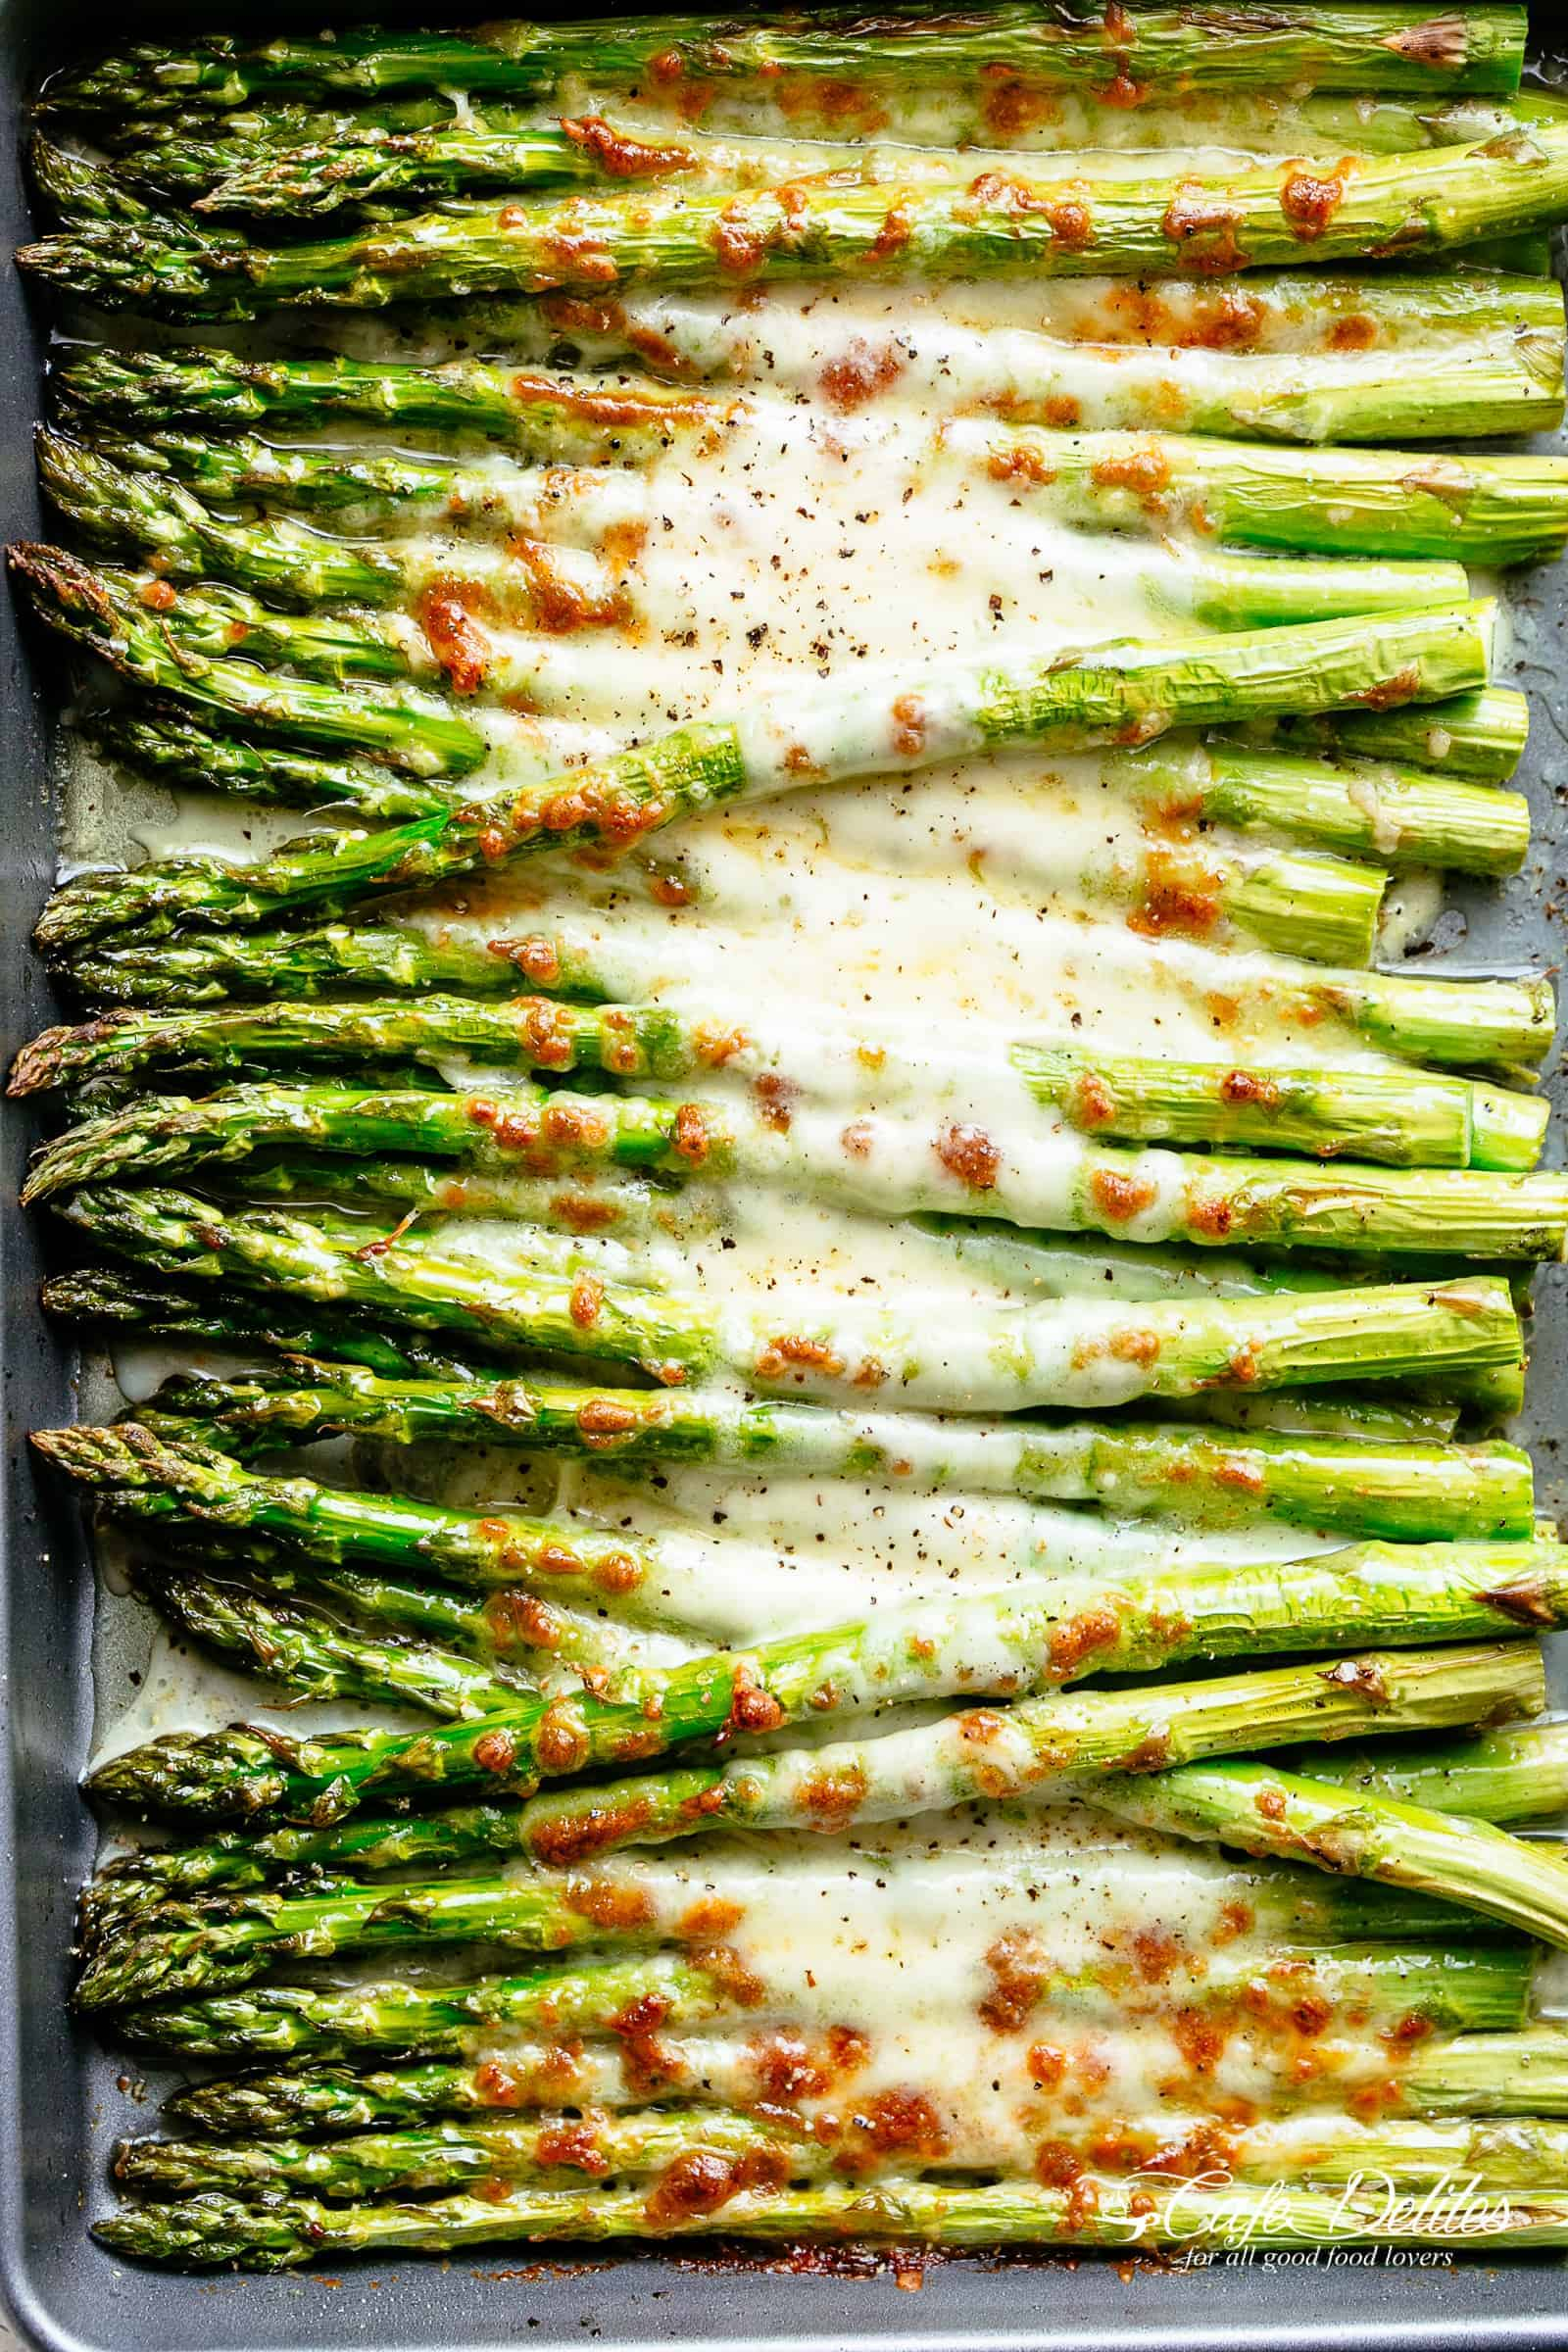 Cheesy Garlic Roasted Asparagus with mozzarella cheese on a silver/grey baking sheet. Low Carb, Keto AND the perfect way to get your veggies in! Even non-asparagus fans LOVE this recipe! Tastes so amazing that the whole family gets behind this asparagus recipe | cafedelites.com